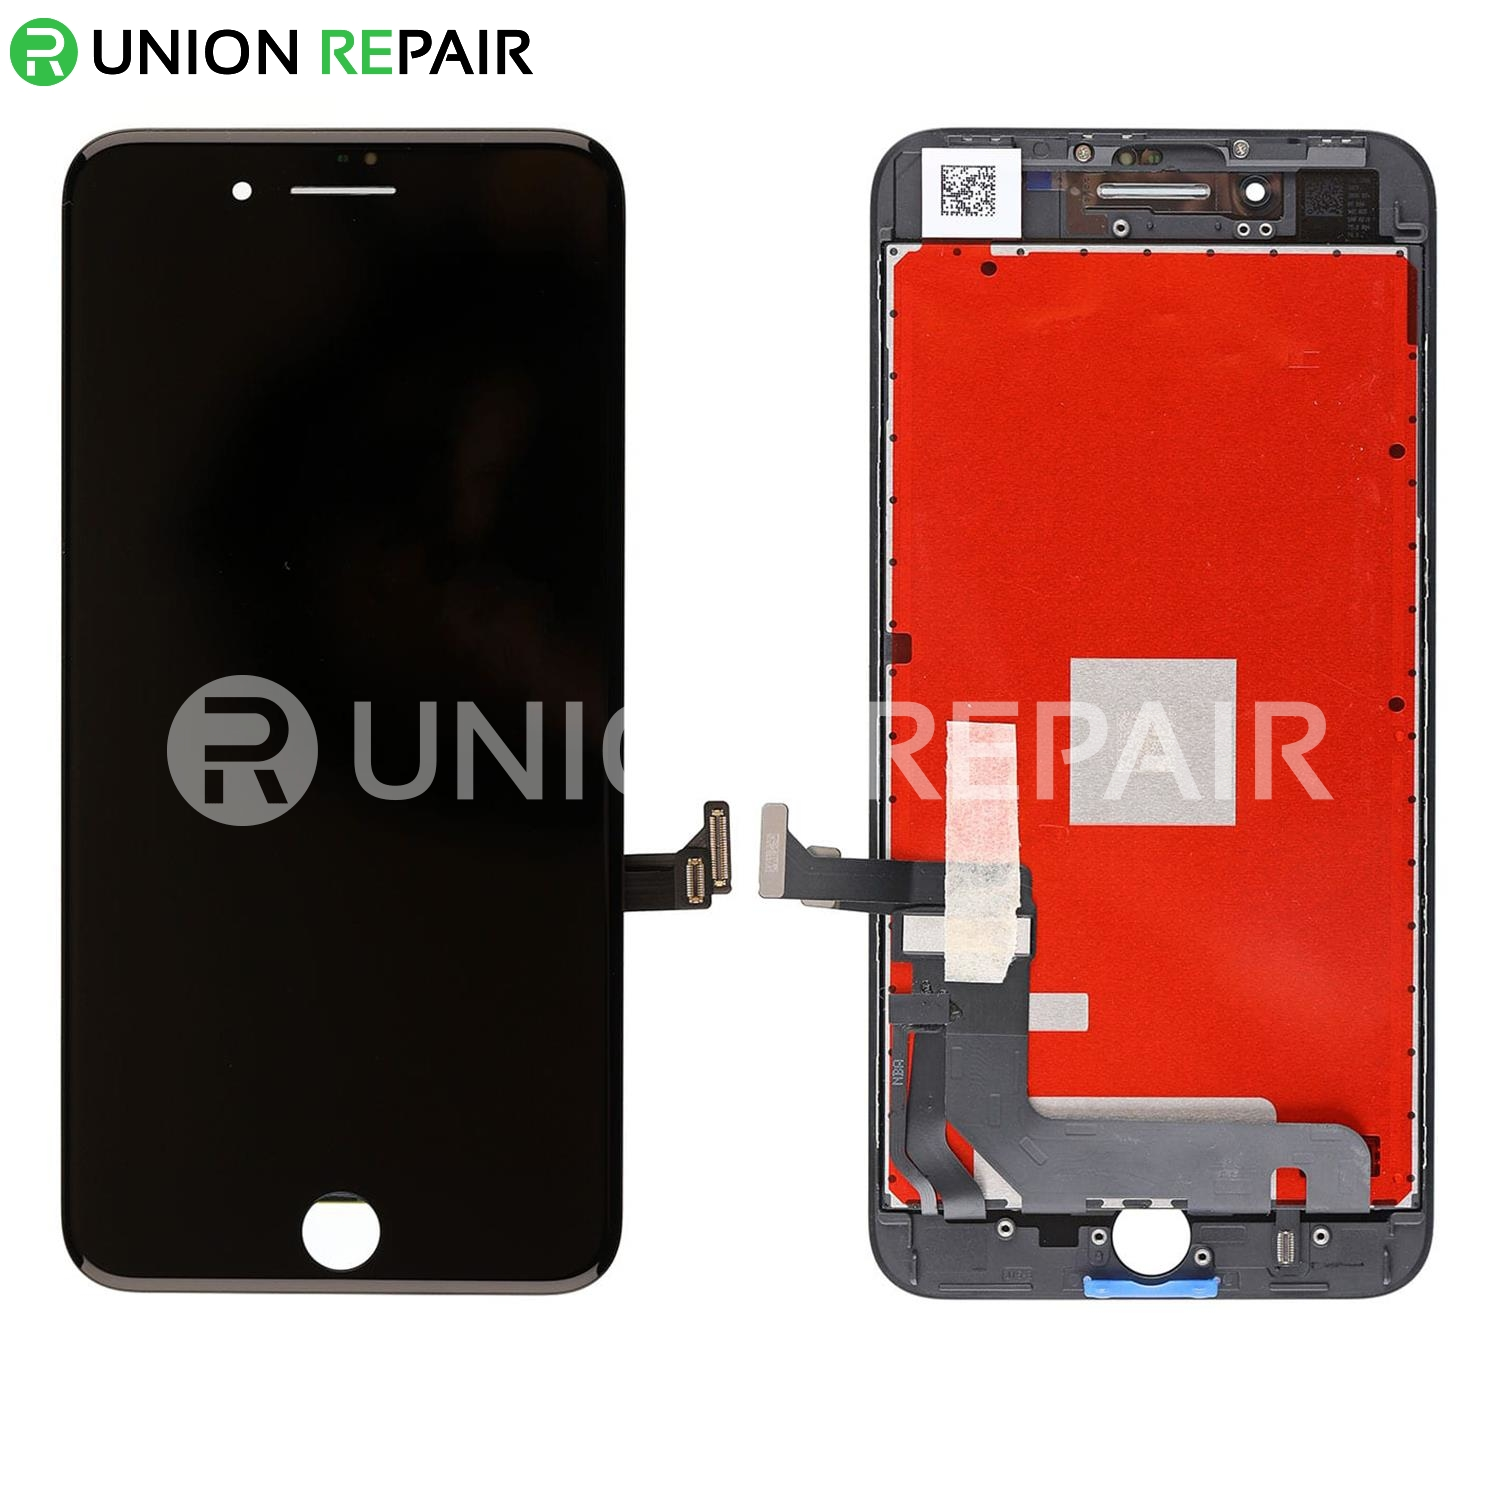 Iphone S Plus Screen Repair Price